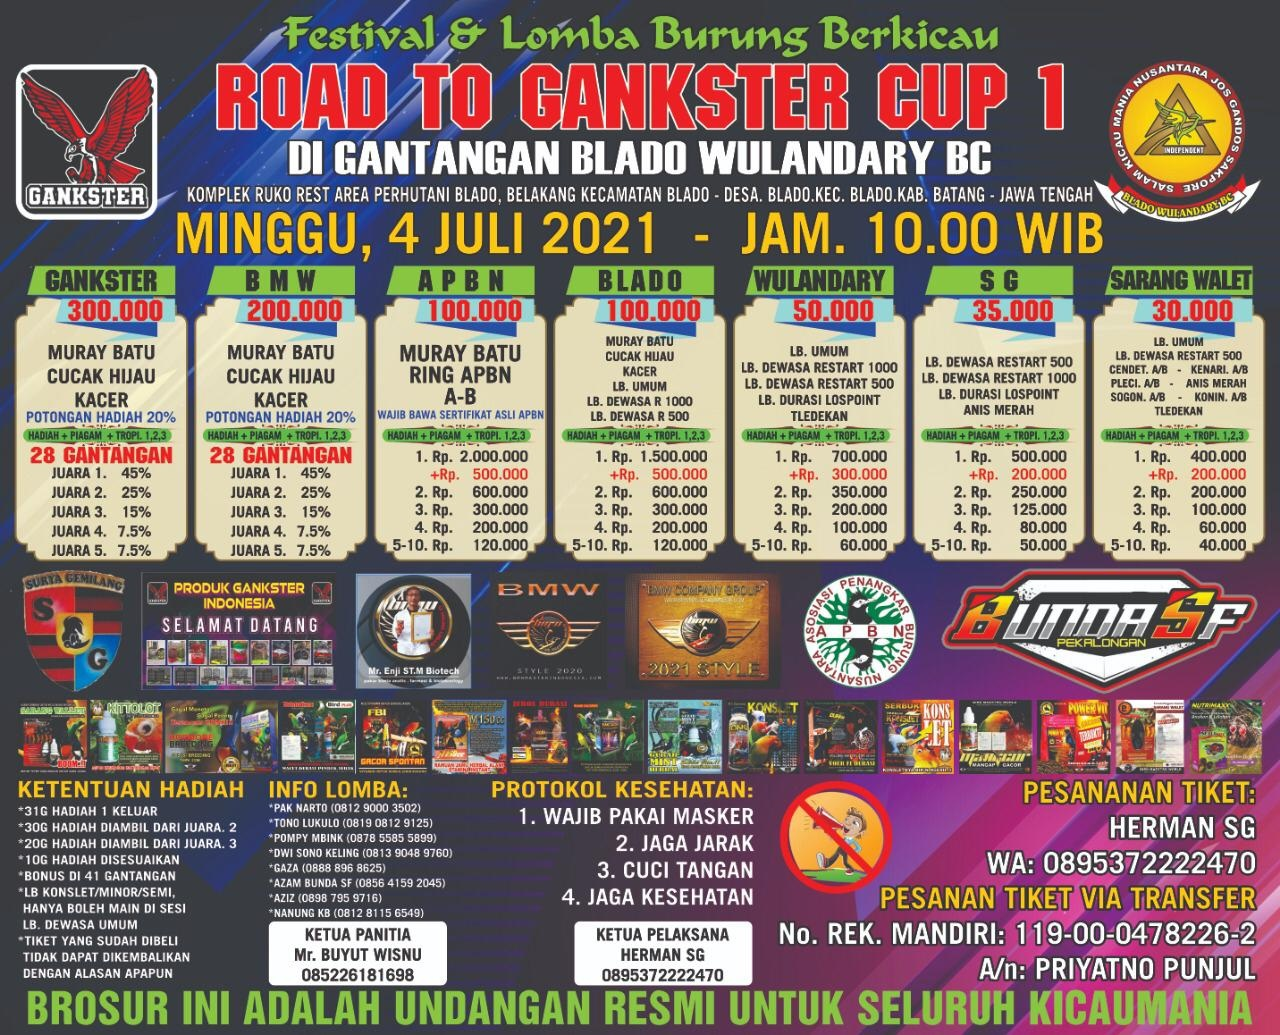 BROSUR ROAD TO GANKSTER CUP 1